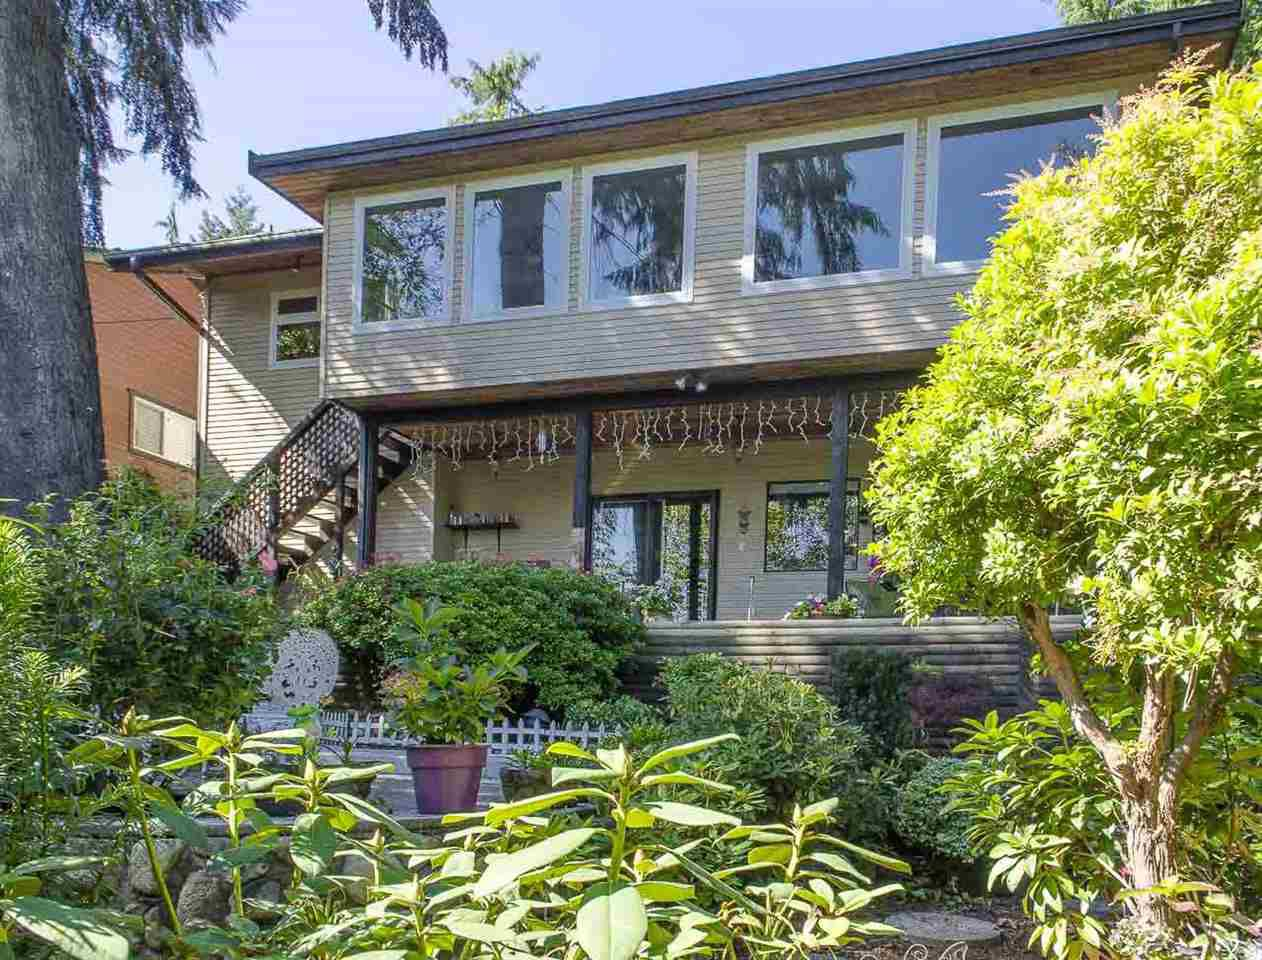 Main Photo: 1785 VIEW Street in PORT MOODY: Port Moody Centre House for sale (Port Moody)  : MLS®# R2000499